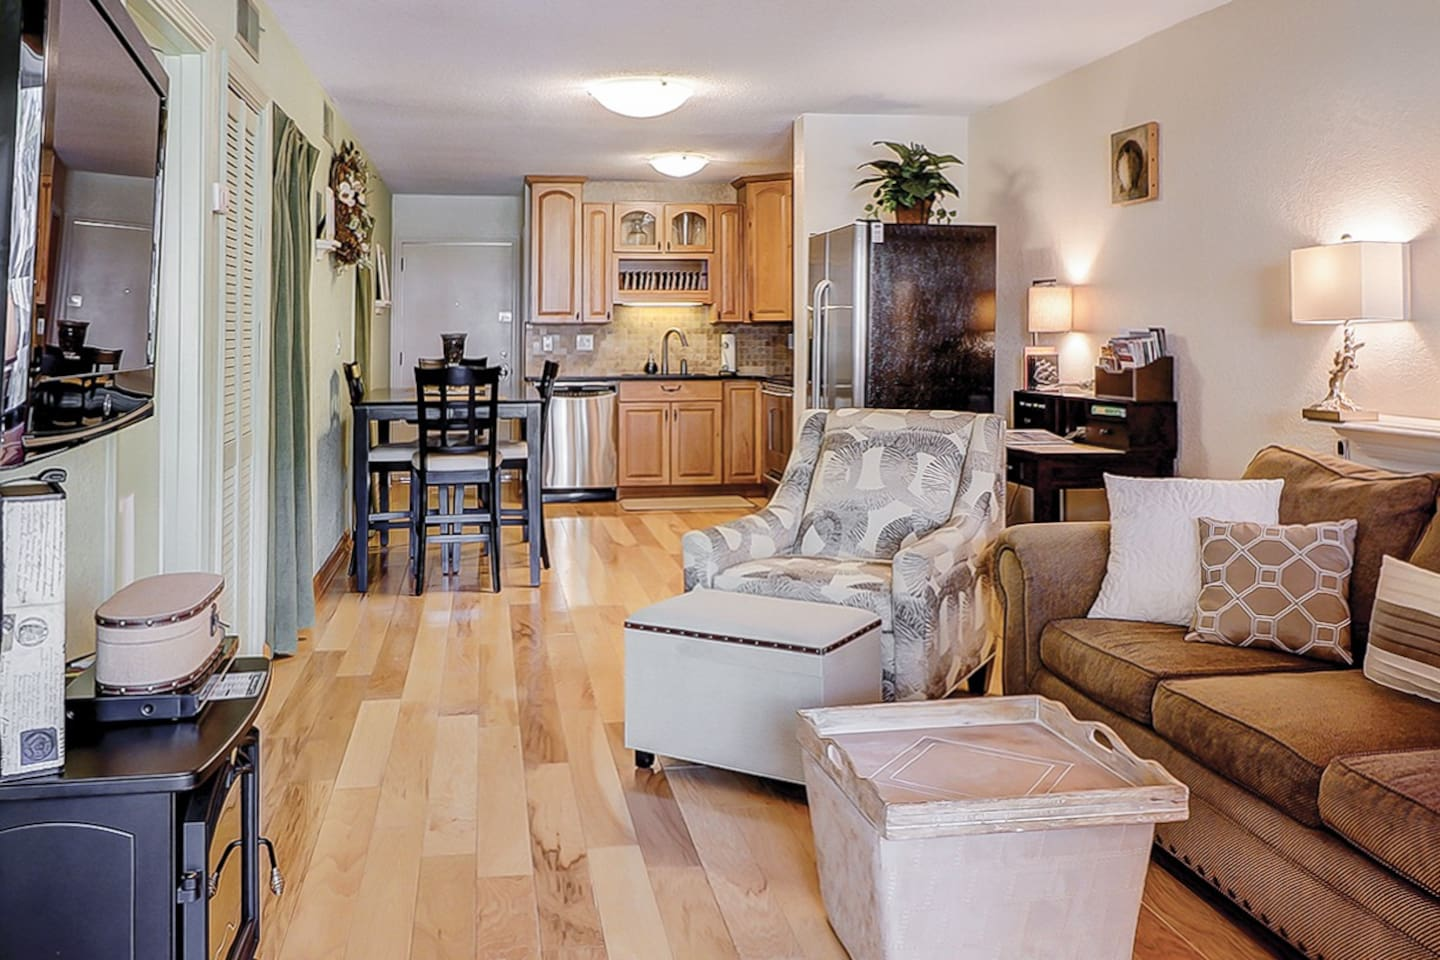 Welcome to Hilton Head Island! Relax after a long day at the beach with seating for 5 in the living area with flat screen TV. Complementary Wi-Fi is provided.